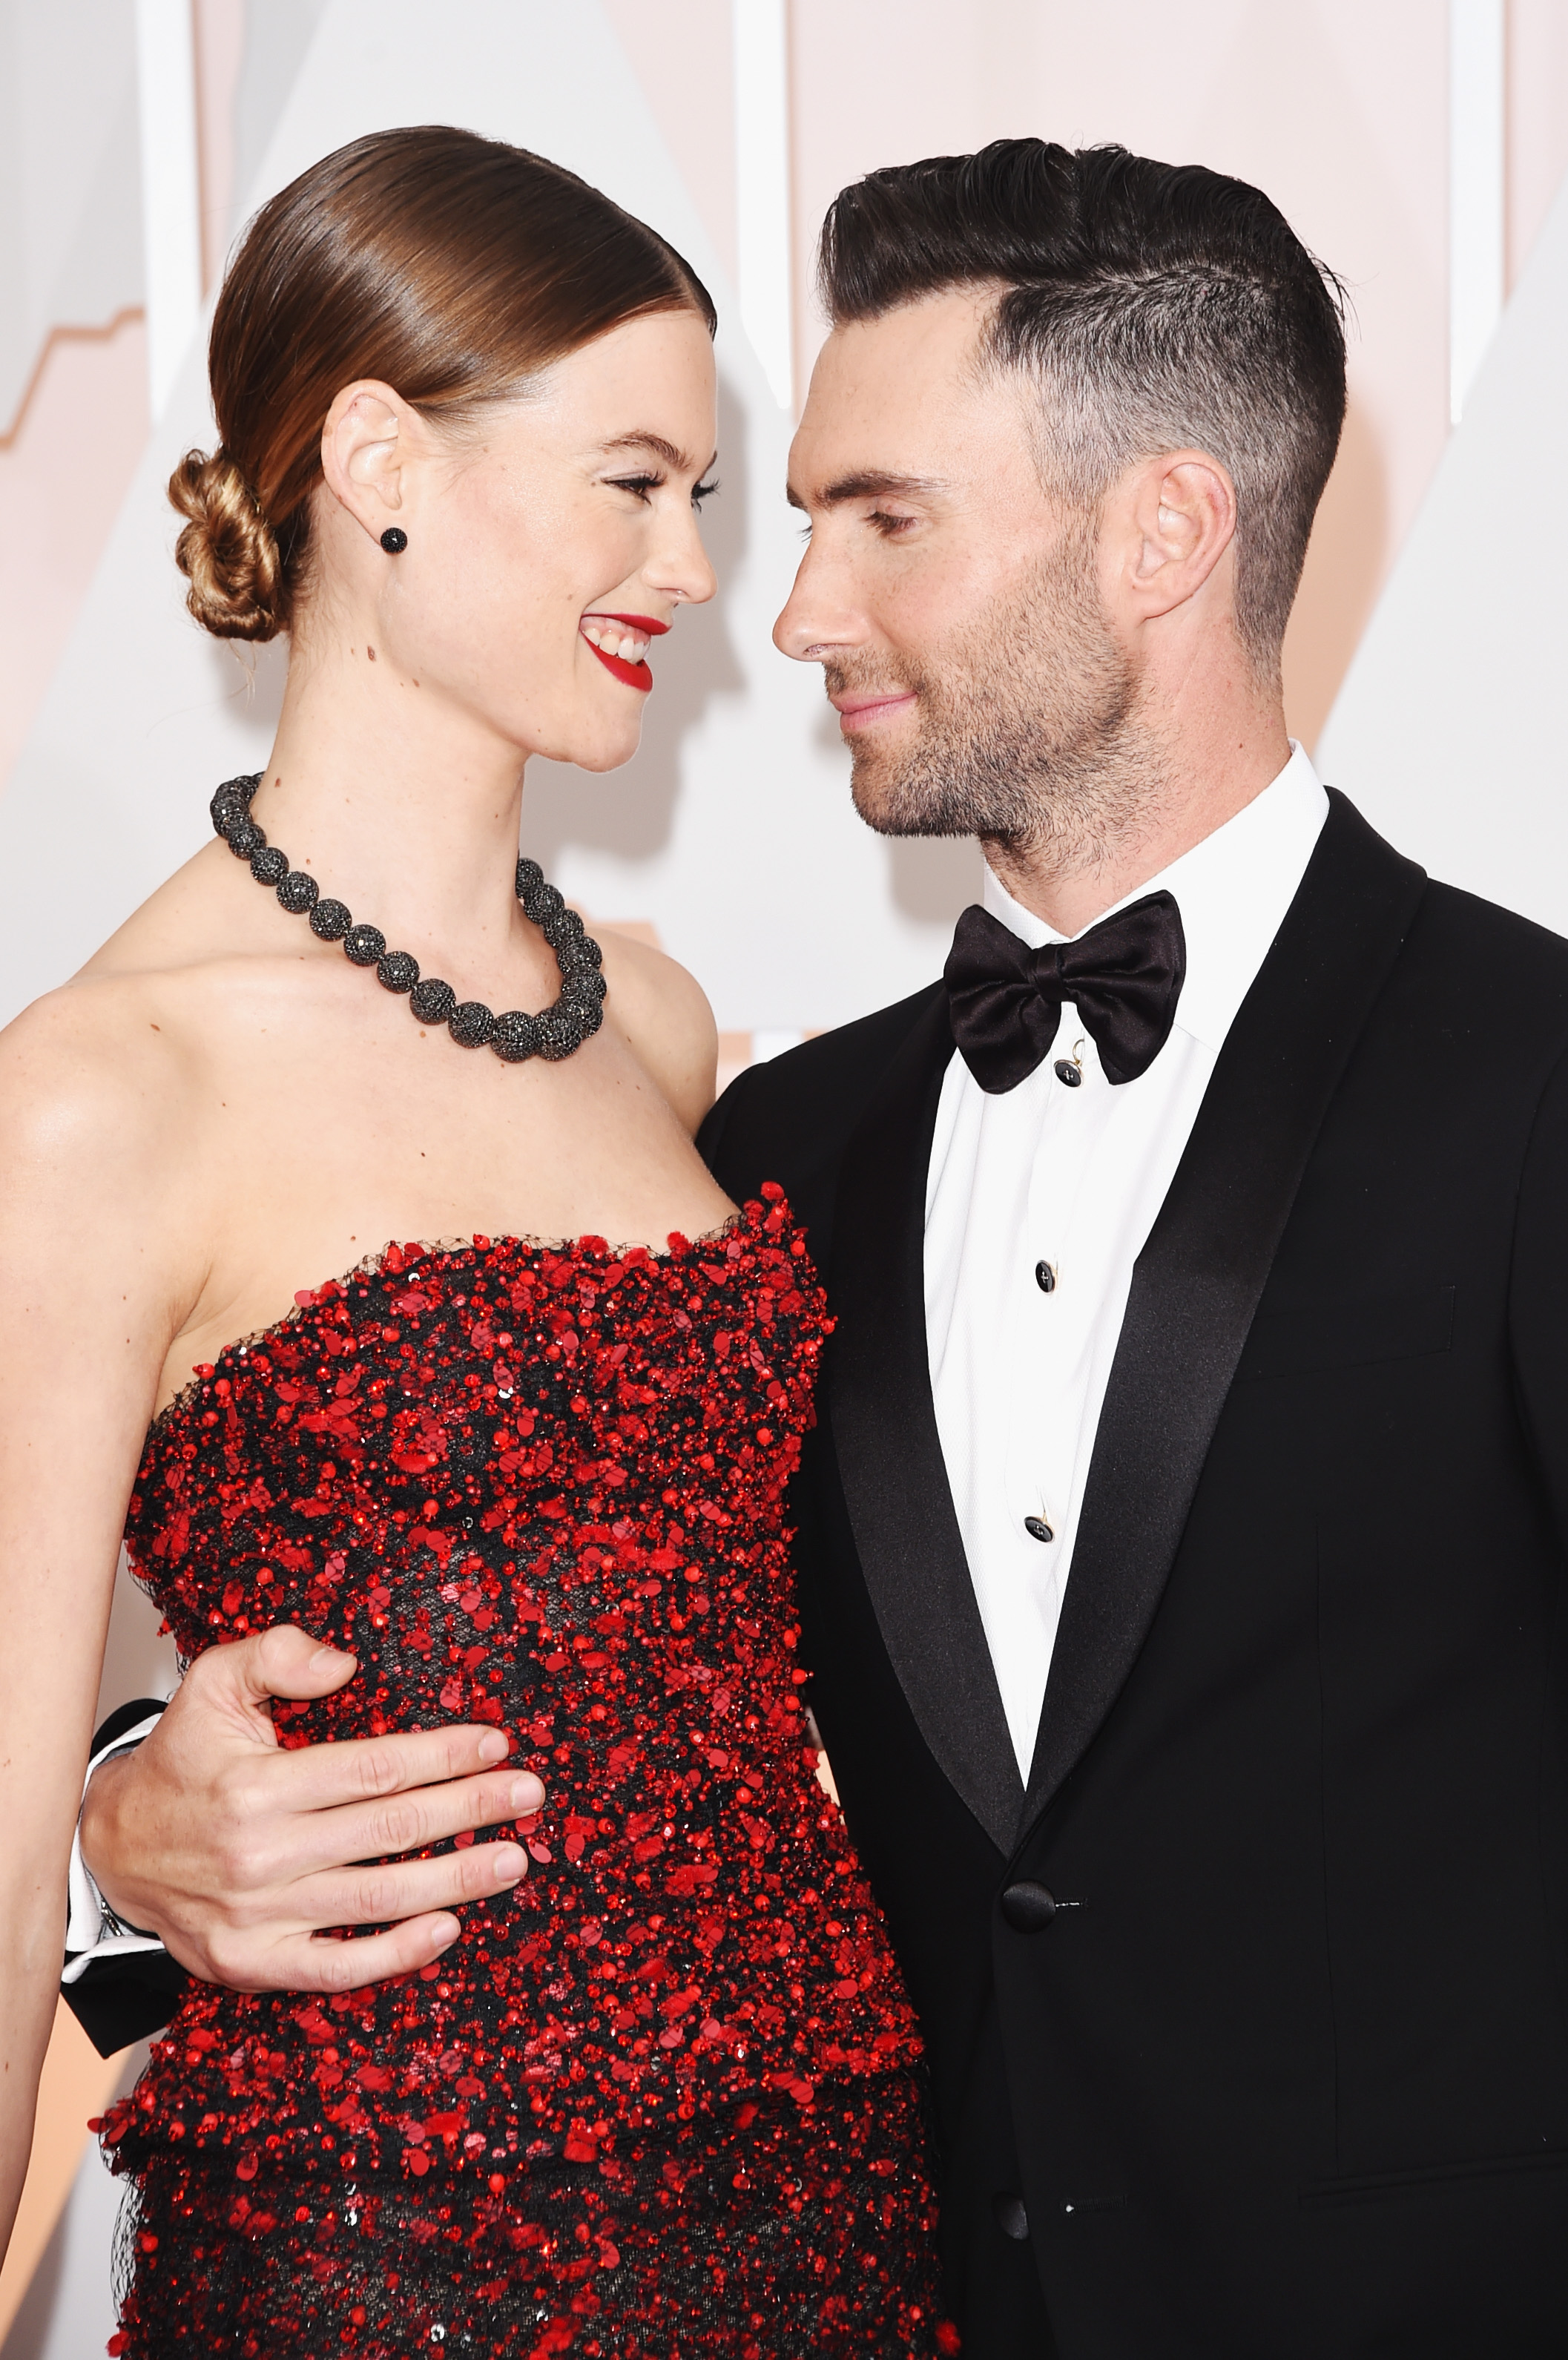 Singer Adam Levine (L) and model Behati Prinsloo attend the 87th Annual Academy Awards at Hollywood & Highland Center on February 22, 2015 in Hollywood, California. (Photo by Hubert Boesl/picture alliance via Getty Images)